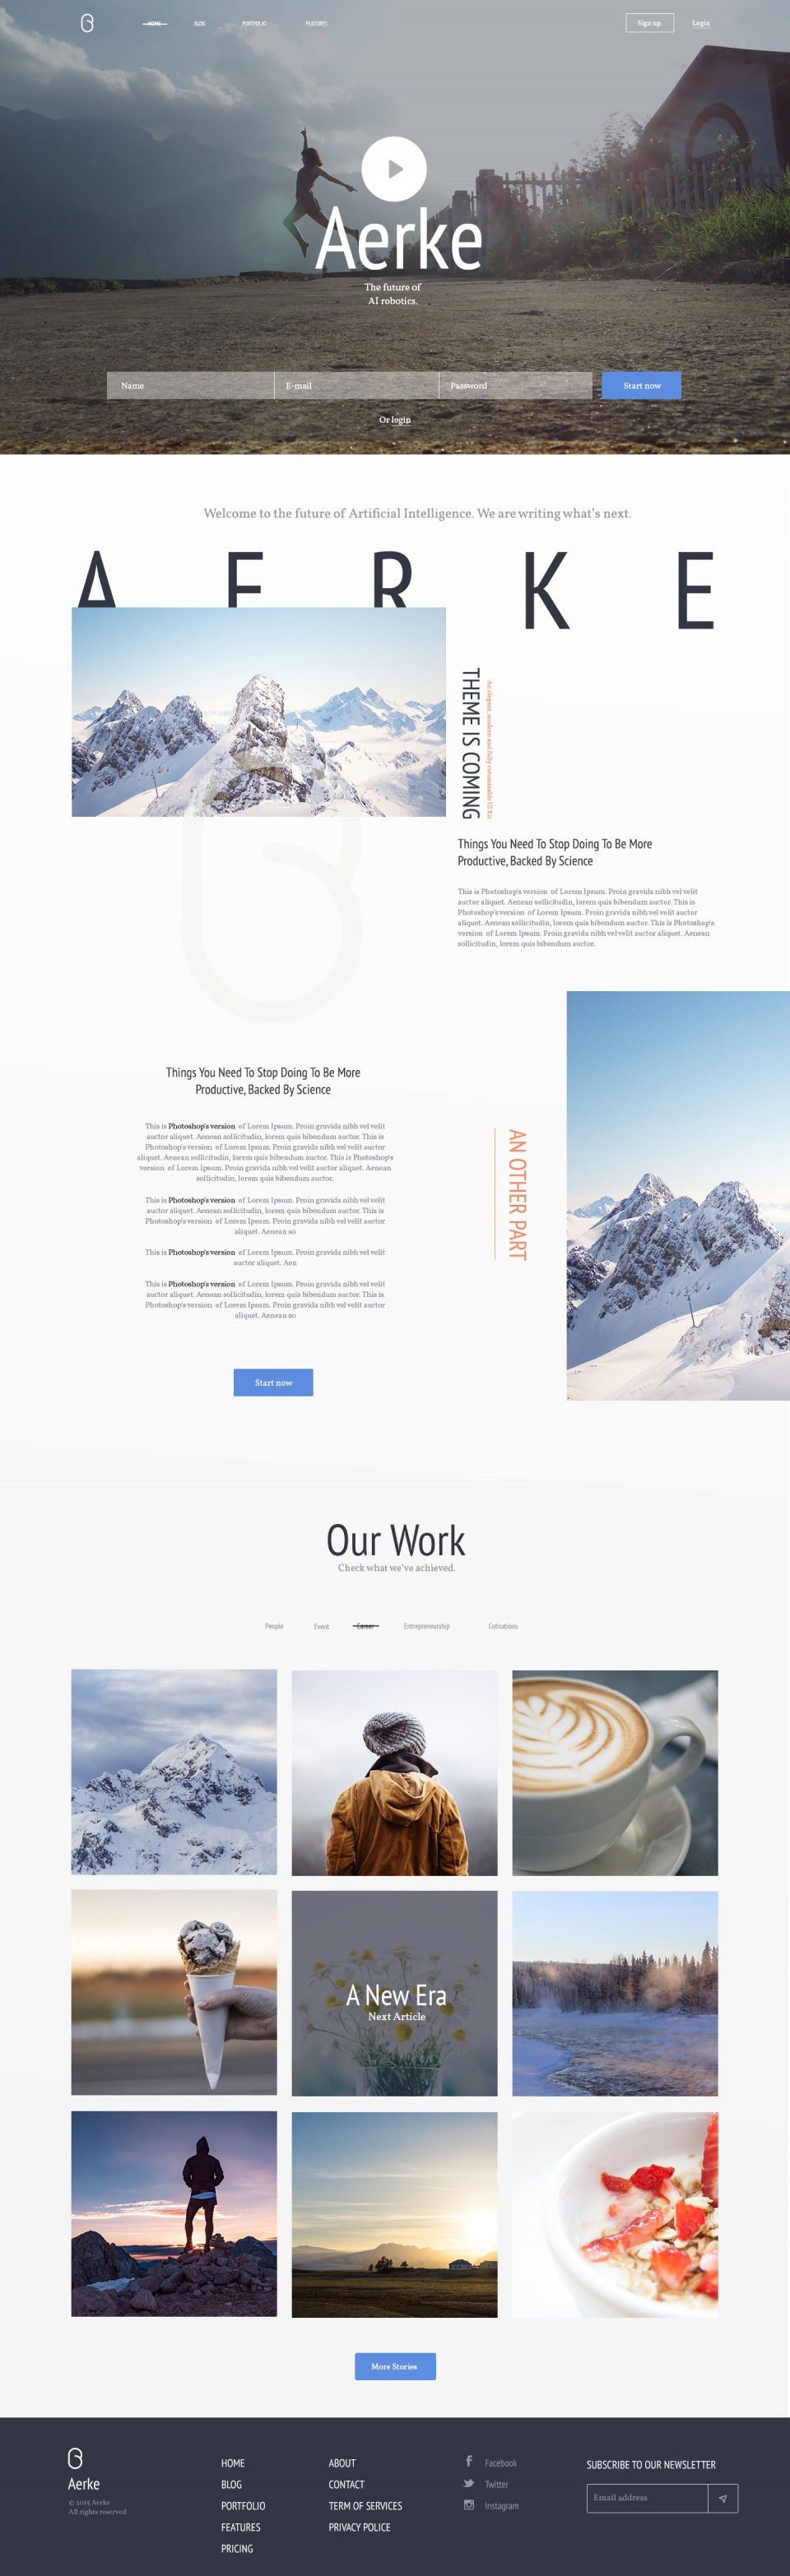 Digital Art Direction / Web Design showcase